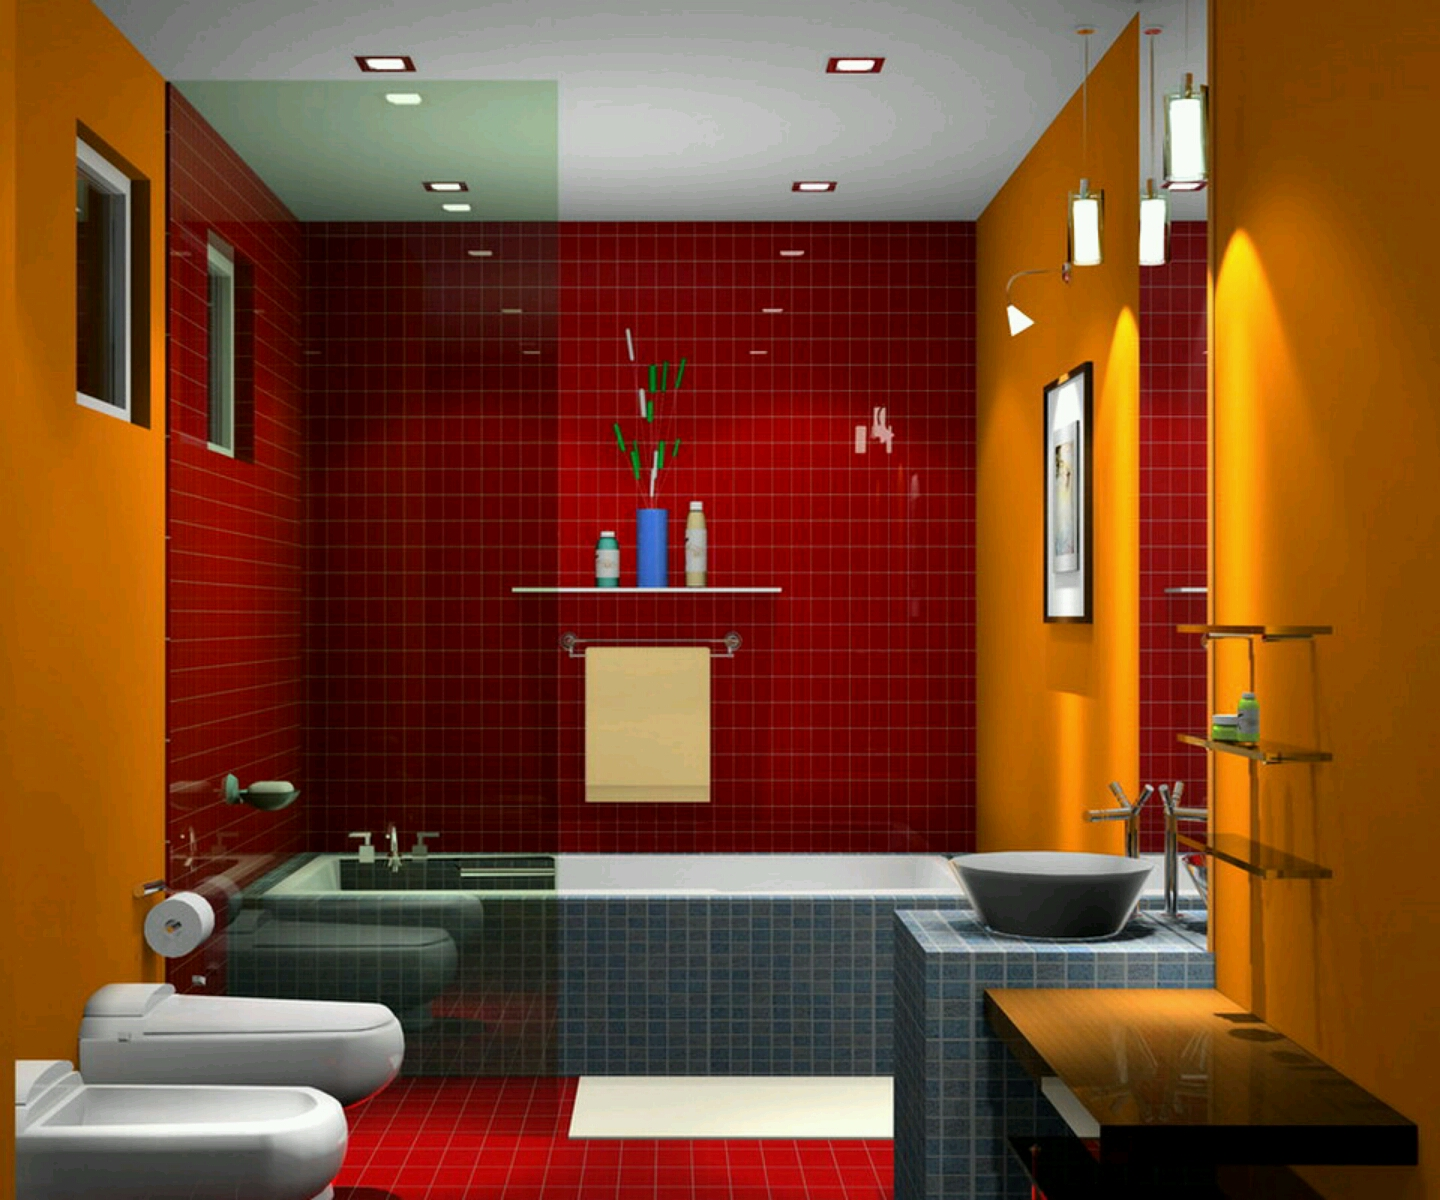 New home designs latest luxury bathrooms designs ideas - Pictures of bathroom designs ...